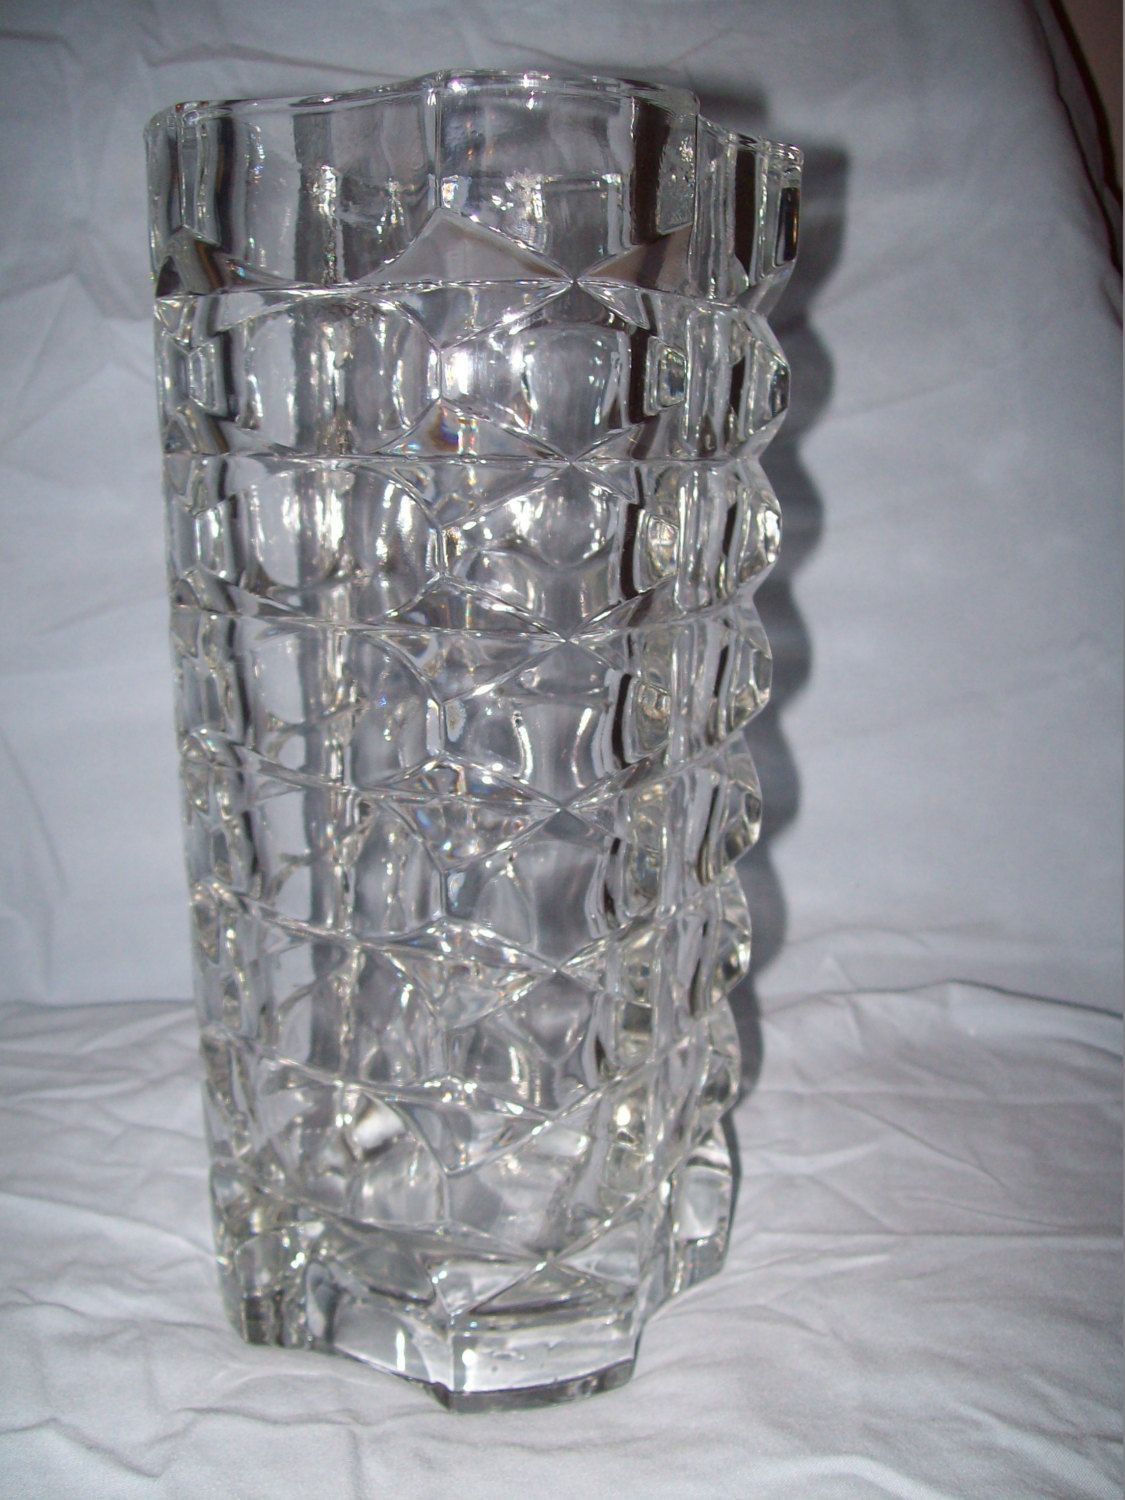 30 attractive Tall Clear Glass Pedestal Vase 2021 free download tall clear glass pedestal vase of clear glass vases stock tall vase centerpiece ideas vases flower regarding clear glass vases image clear glass very old large vase leaded glass very heavy 6